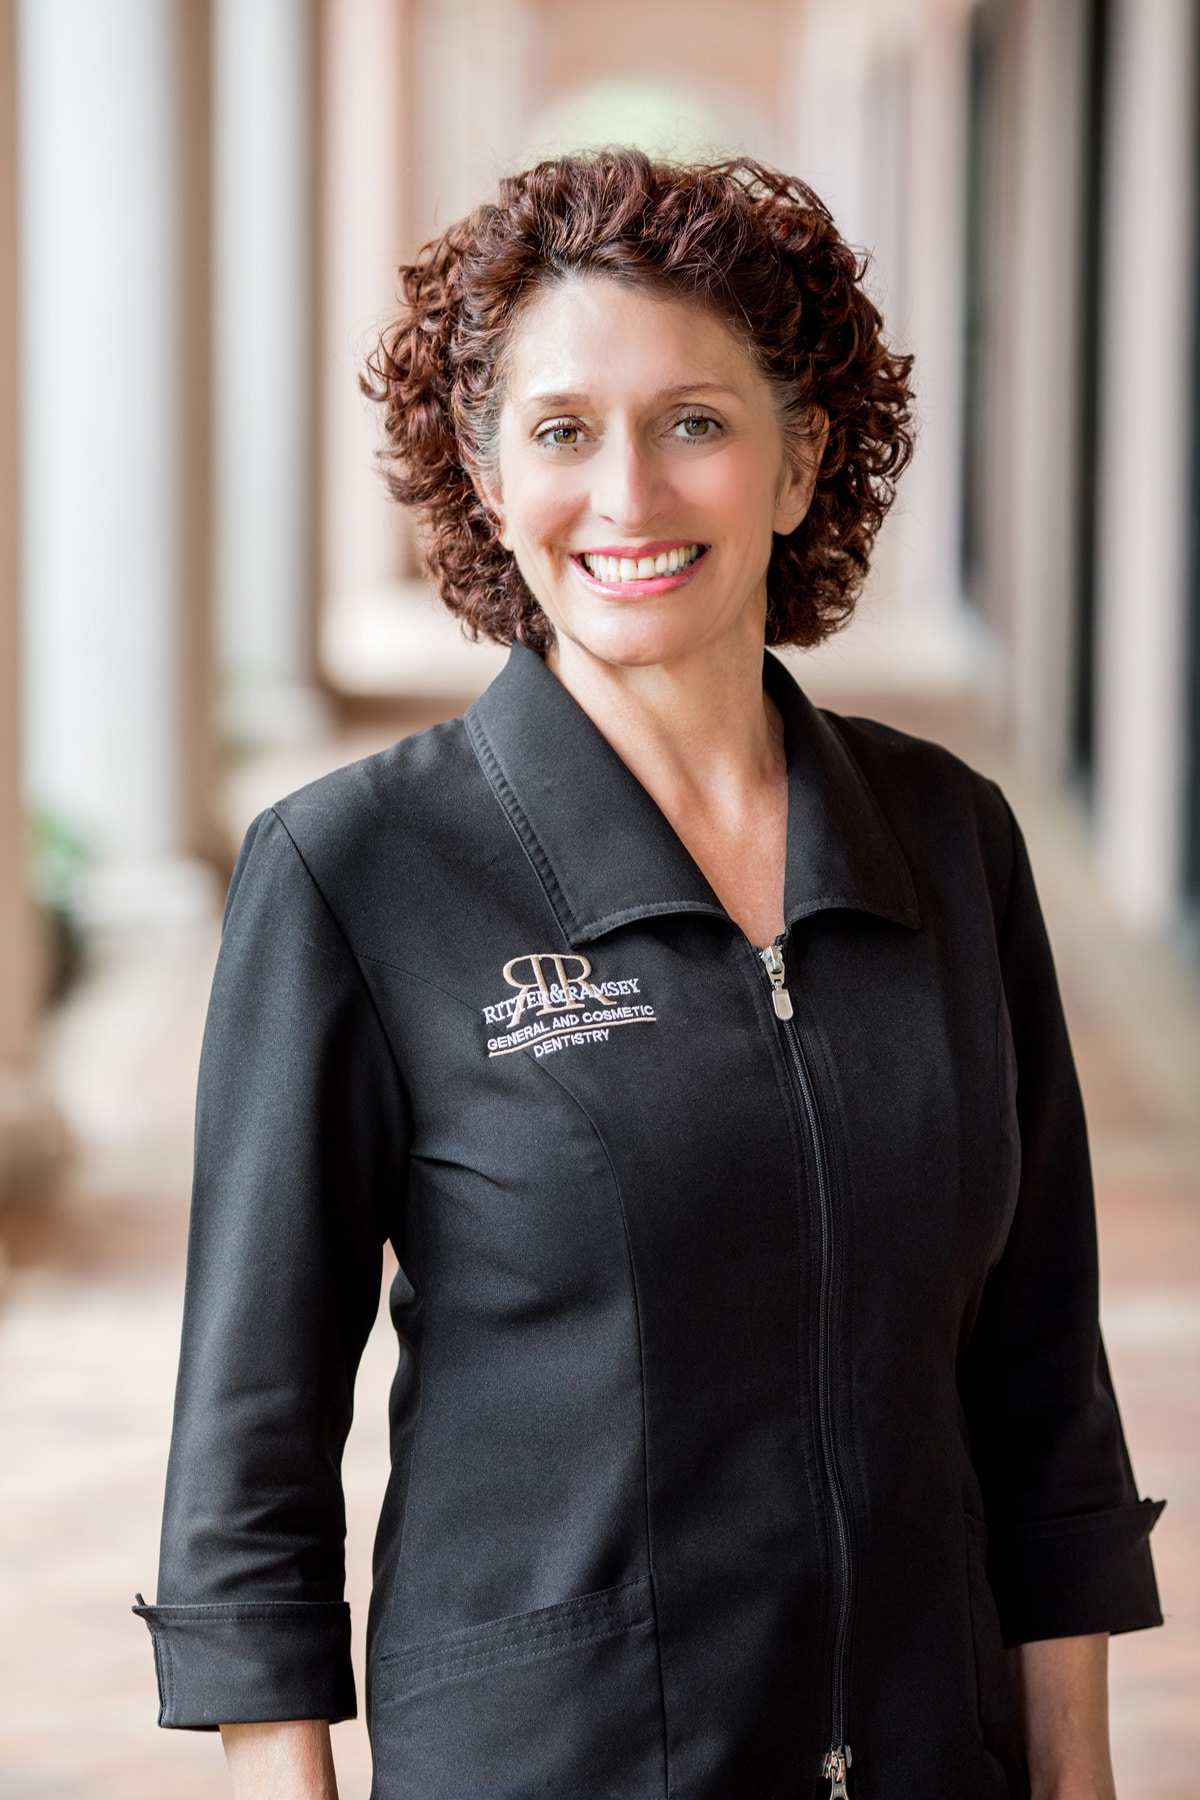 Meet Rita at Ritter & Ramsey General And Cosmetic Dentistry in Jupiter, FL.